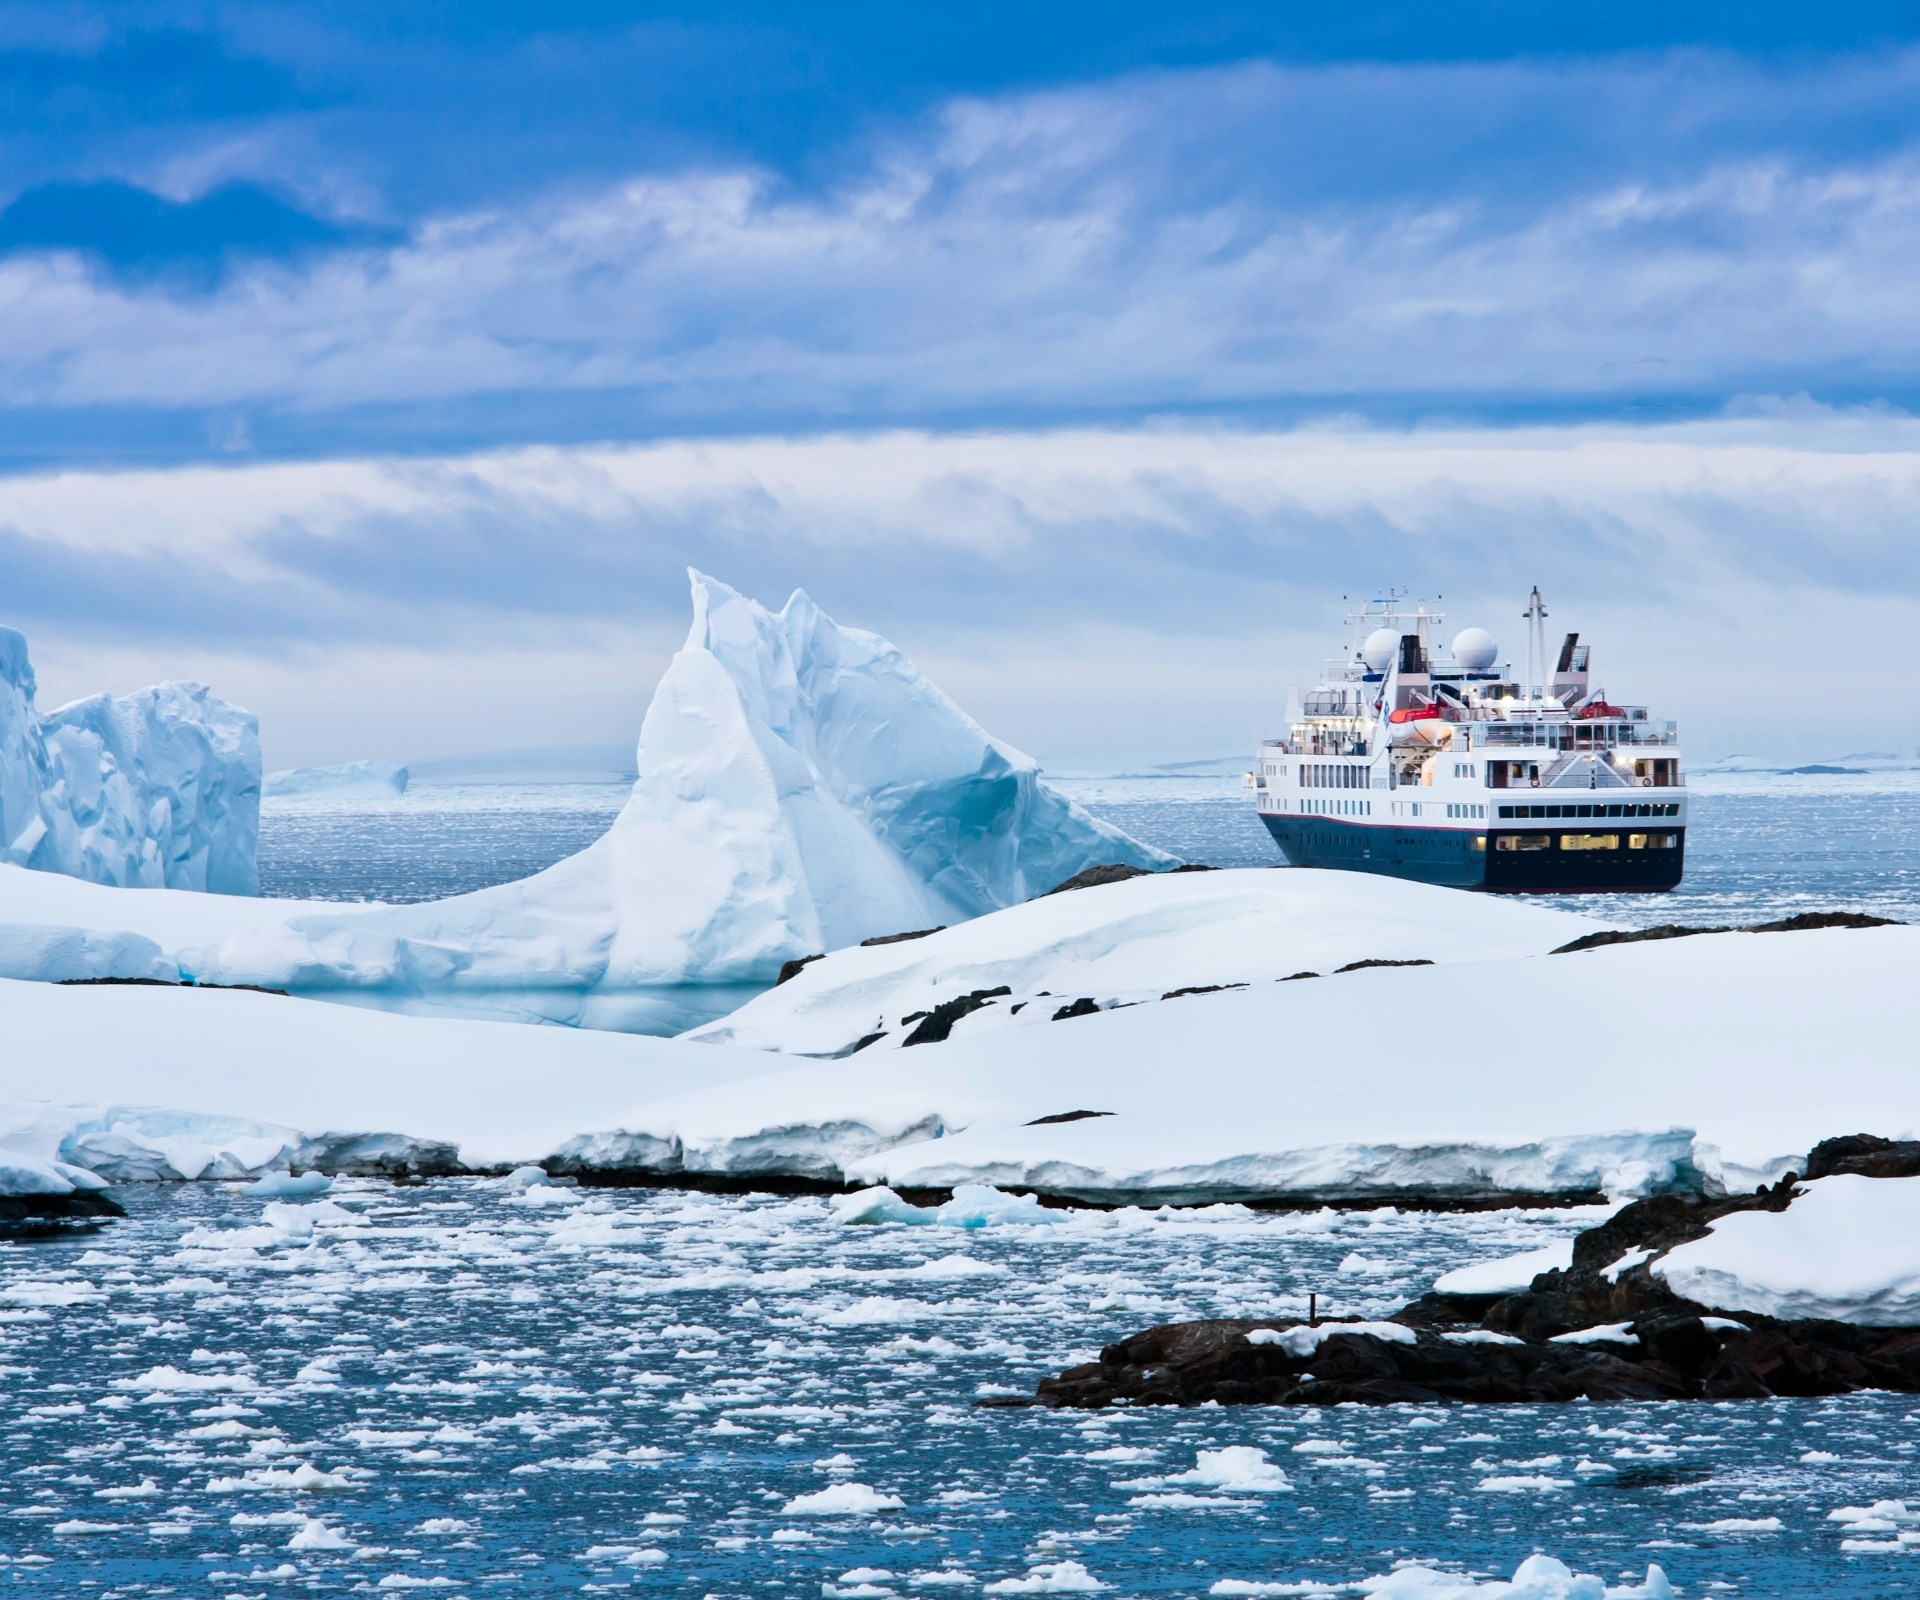 **Antarctica** This remote destination is the ultimate in cruising – starting with the daunting crossing of Drake Passage. The reward is a pristine continent of snow-capped mountains, glaciers and drifting icebergs inhabited by whales, seals and astounding colonies of penguins. The Falkland and South Georgia islands are dense in seabirds. *Recommended: [The Ultimate Antarctic Adventure](https://www.scenic.com.au/tour/the-ultimate-antarctic-adventure/2546) by [cruises.com.au](http://www.cruises.com.au/).*: [object Object]